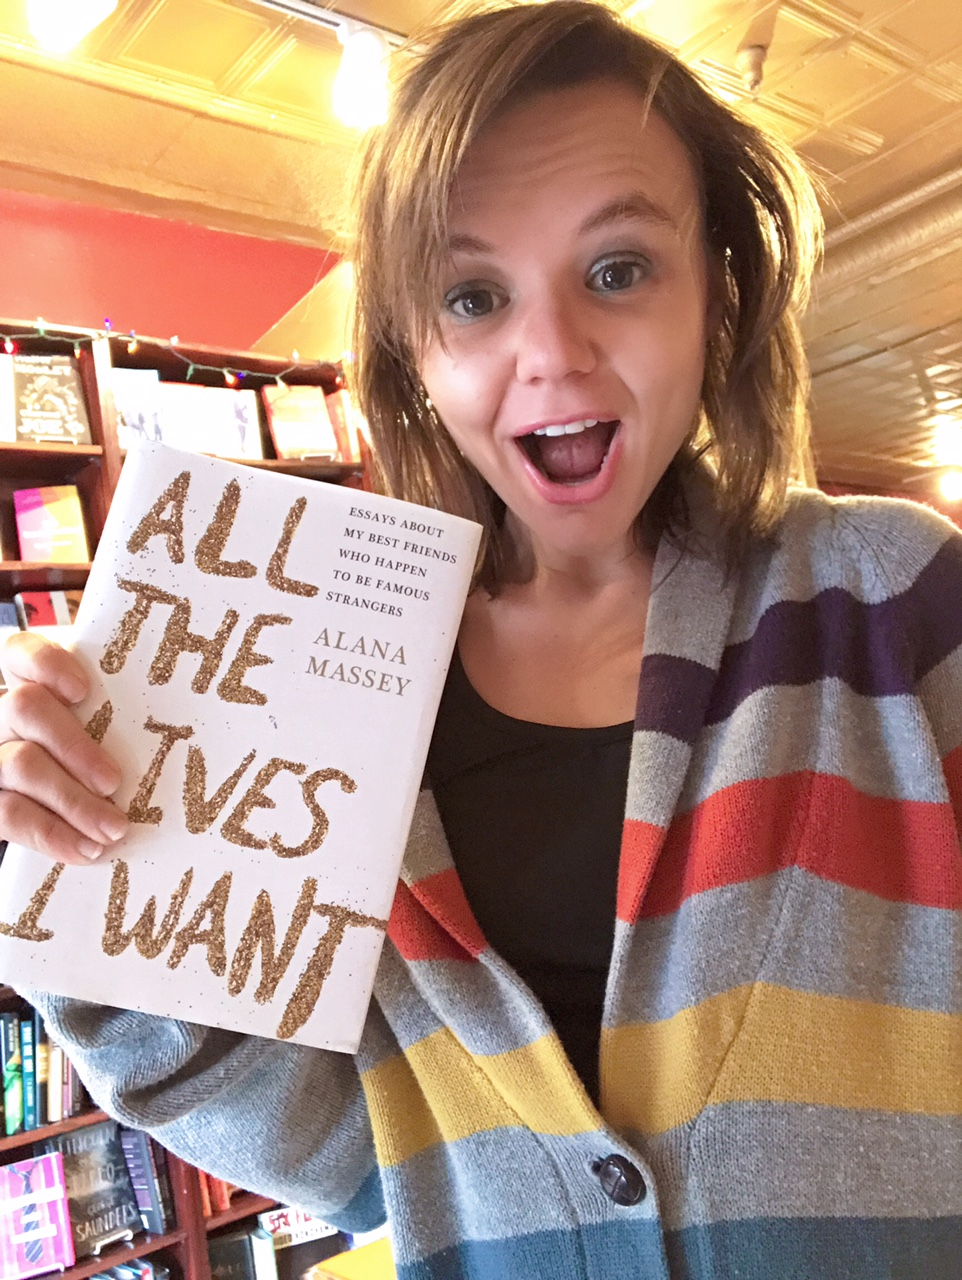 Alana Massey All the Lives I want.JPG